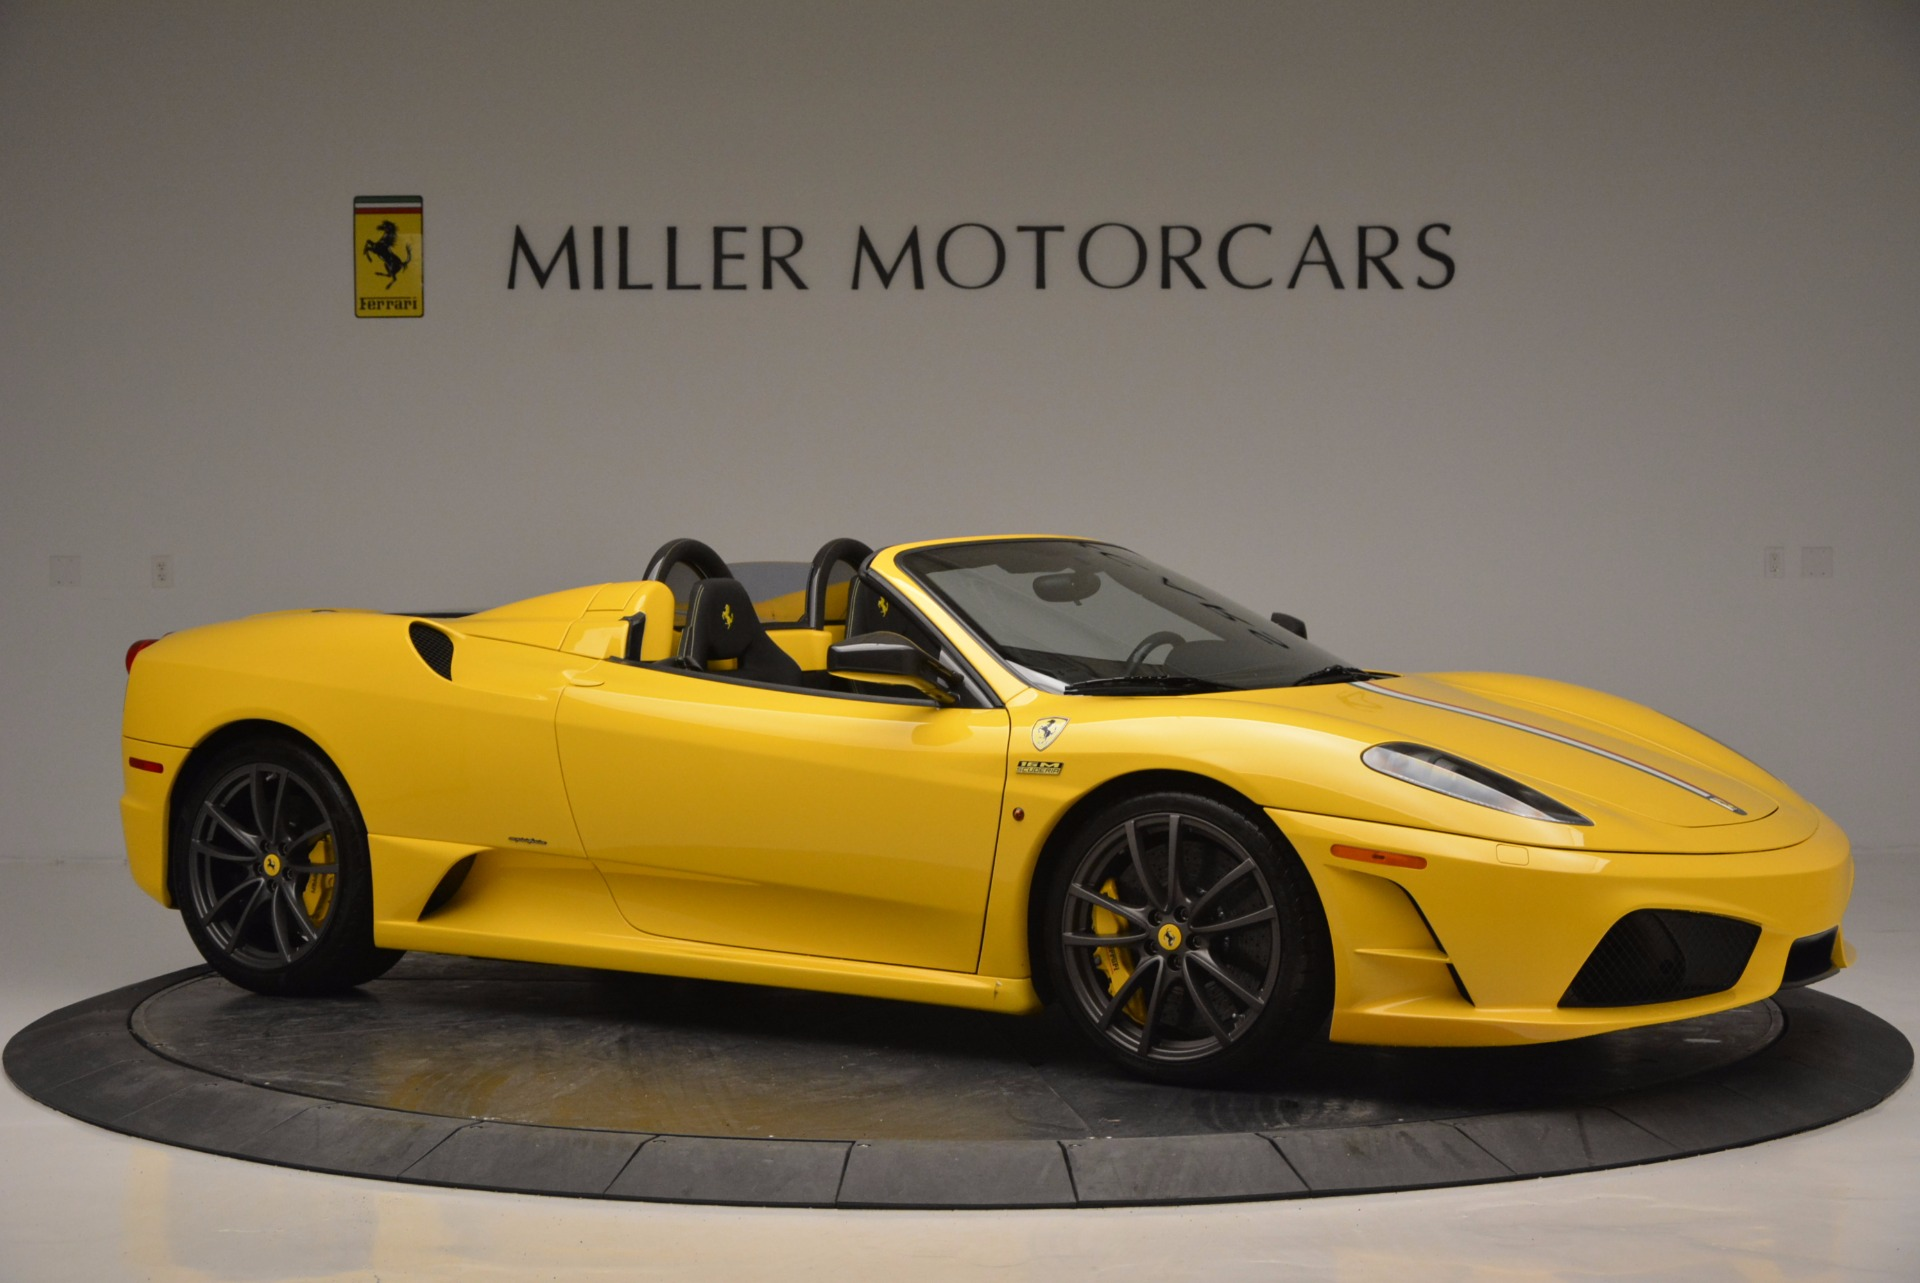 Used 2009 Ferrari F430 Scuderia 16M For Sale In Greenwich, CT 856_p10